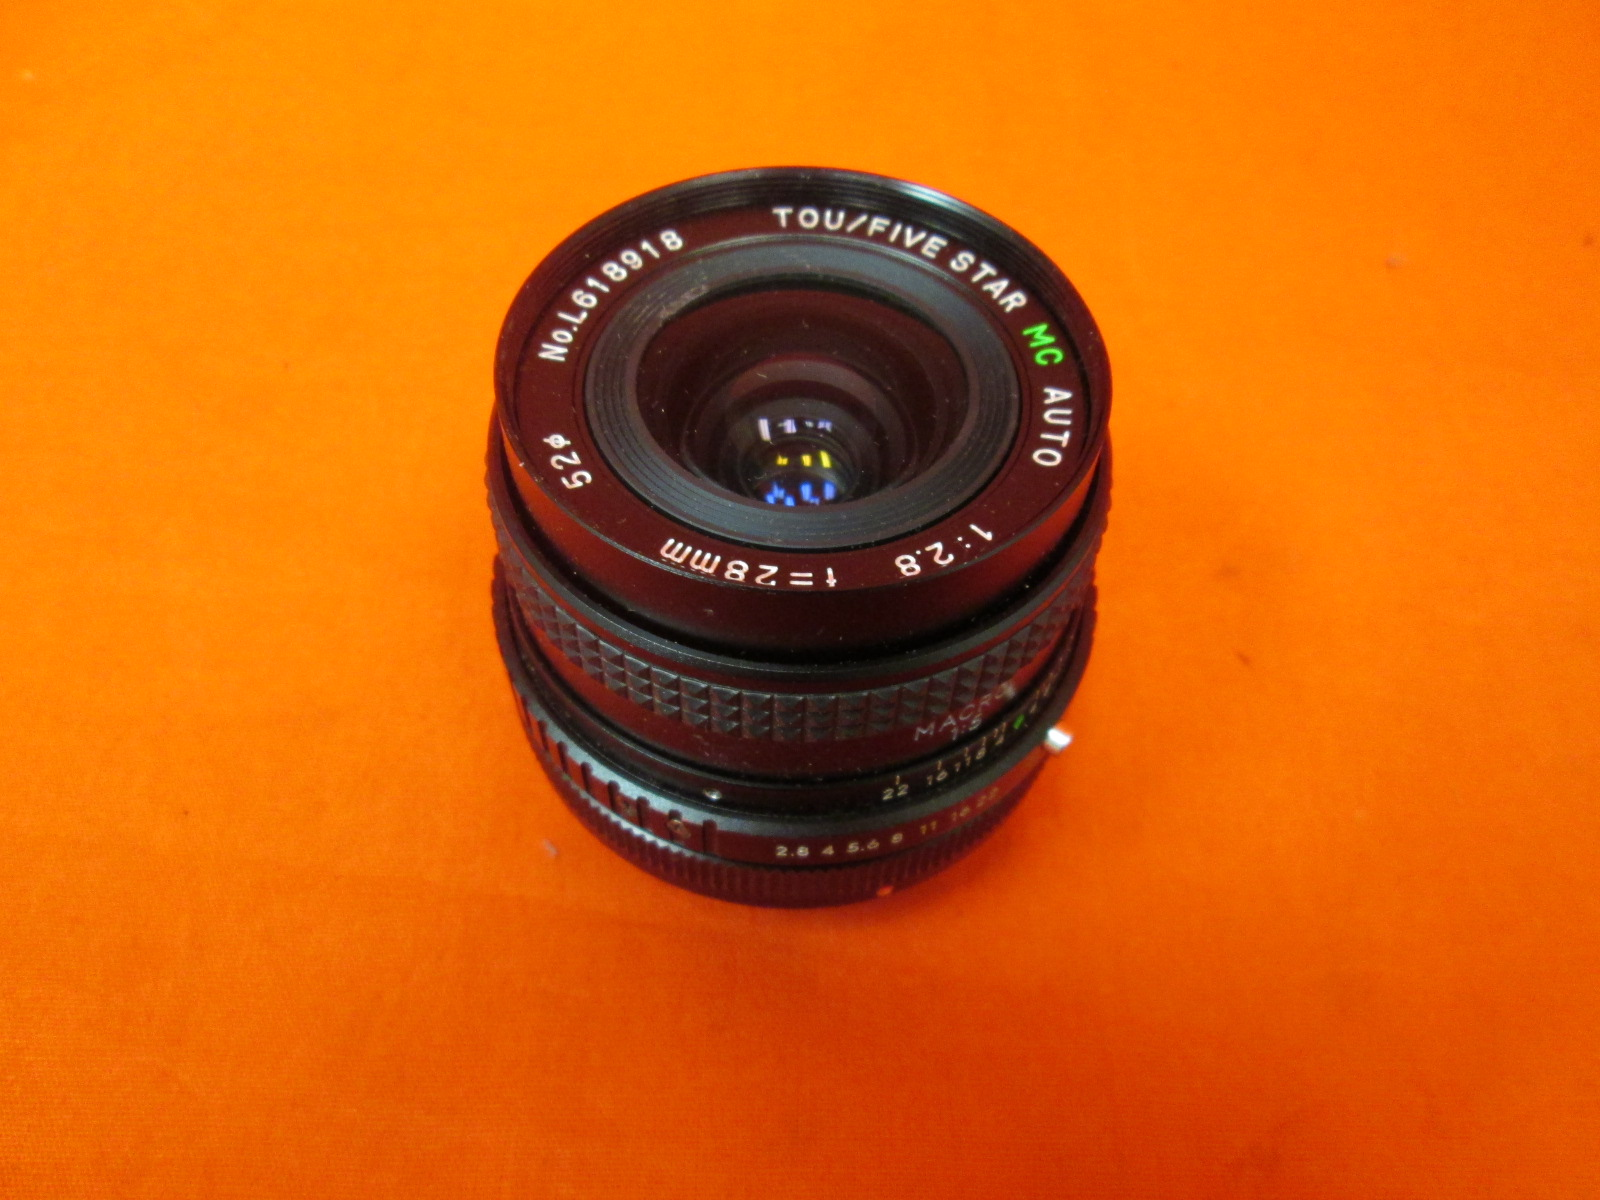 Tou Five Star Mc Auto 28-75MM Zoom Lens 1:3.5-4.5 Macro SS1030039